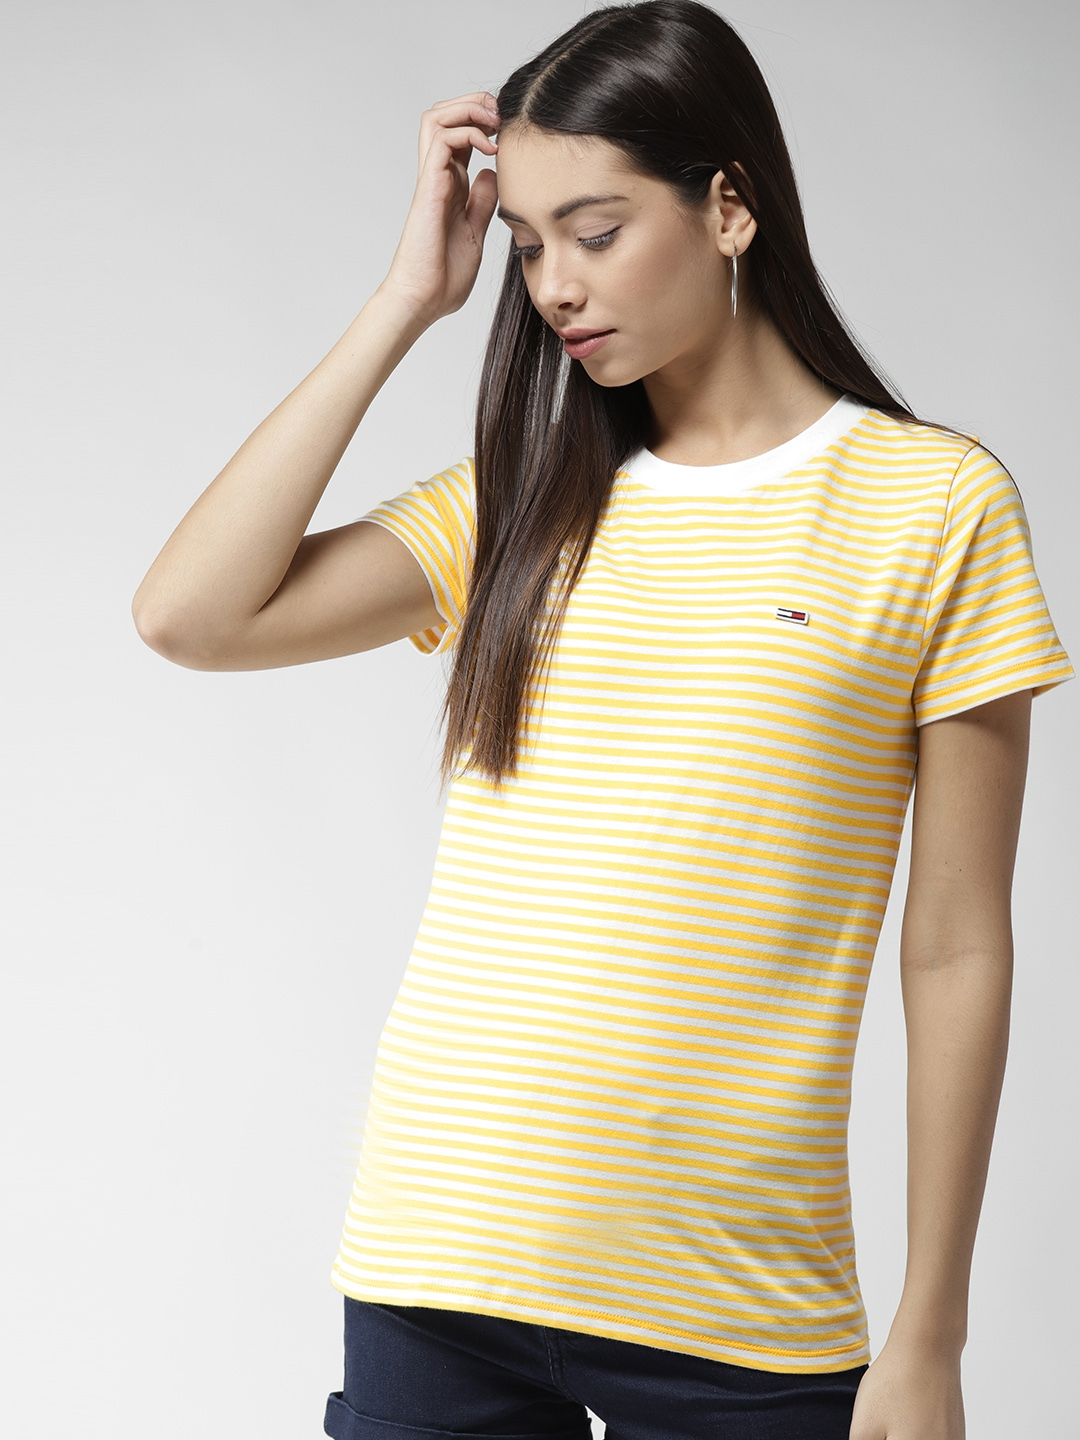 a5df9a5a Buy Tommy Hilfiger Women White & Yellow Striped Round Neck T Shirt ...